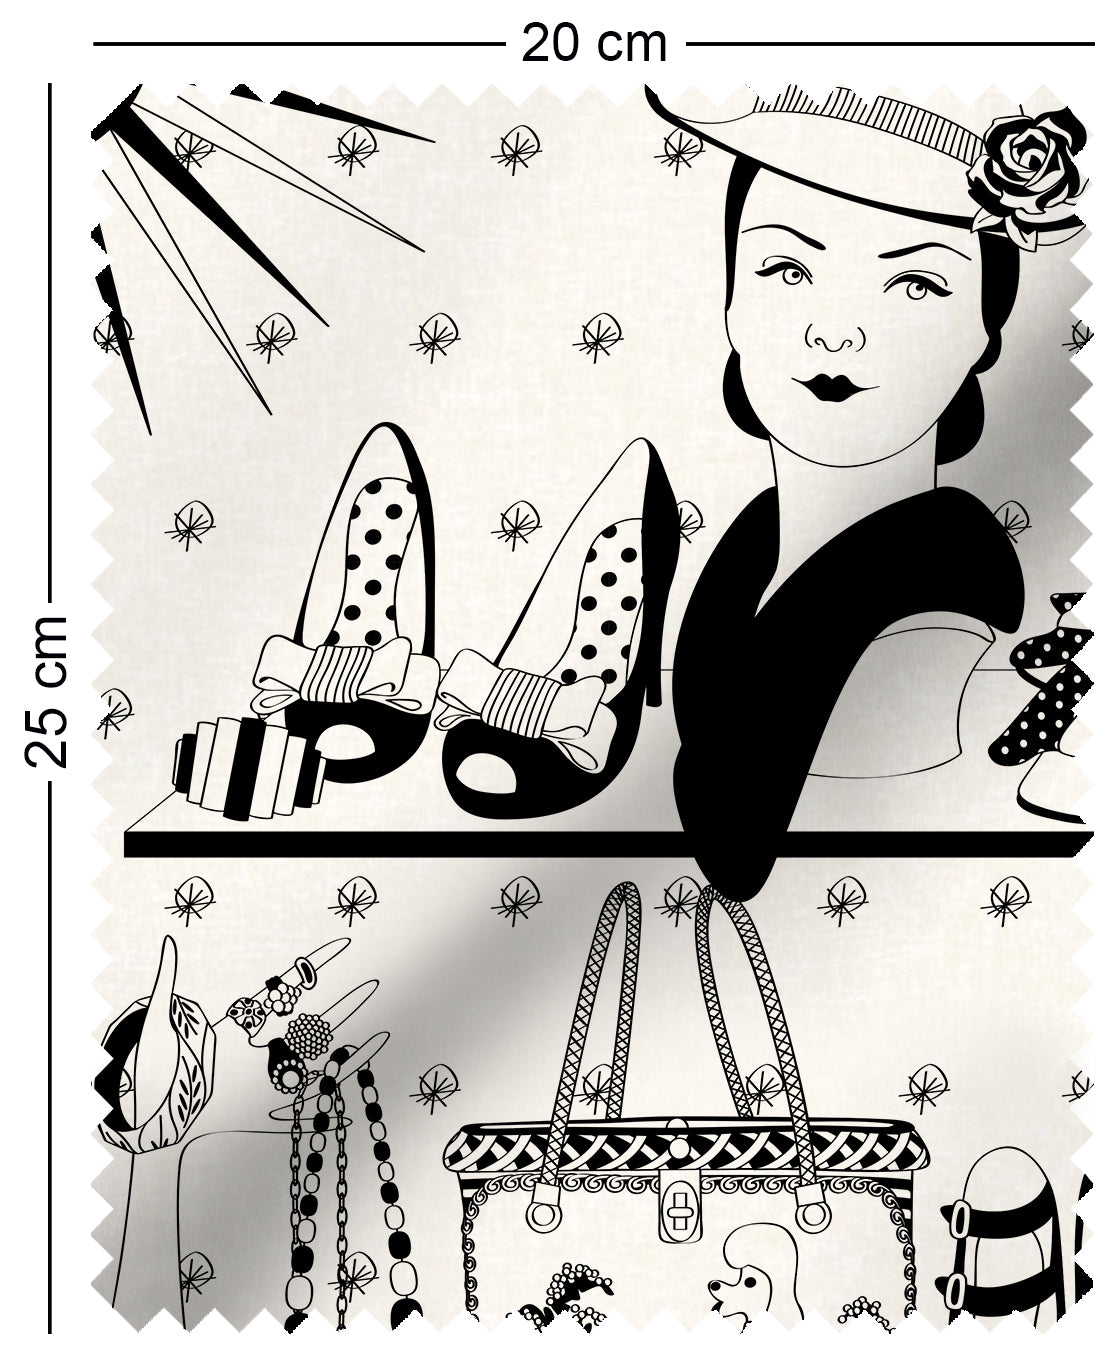 fabric swatch with vintage handbags and jewellery design in monochrome